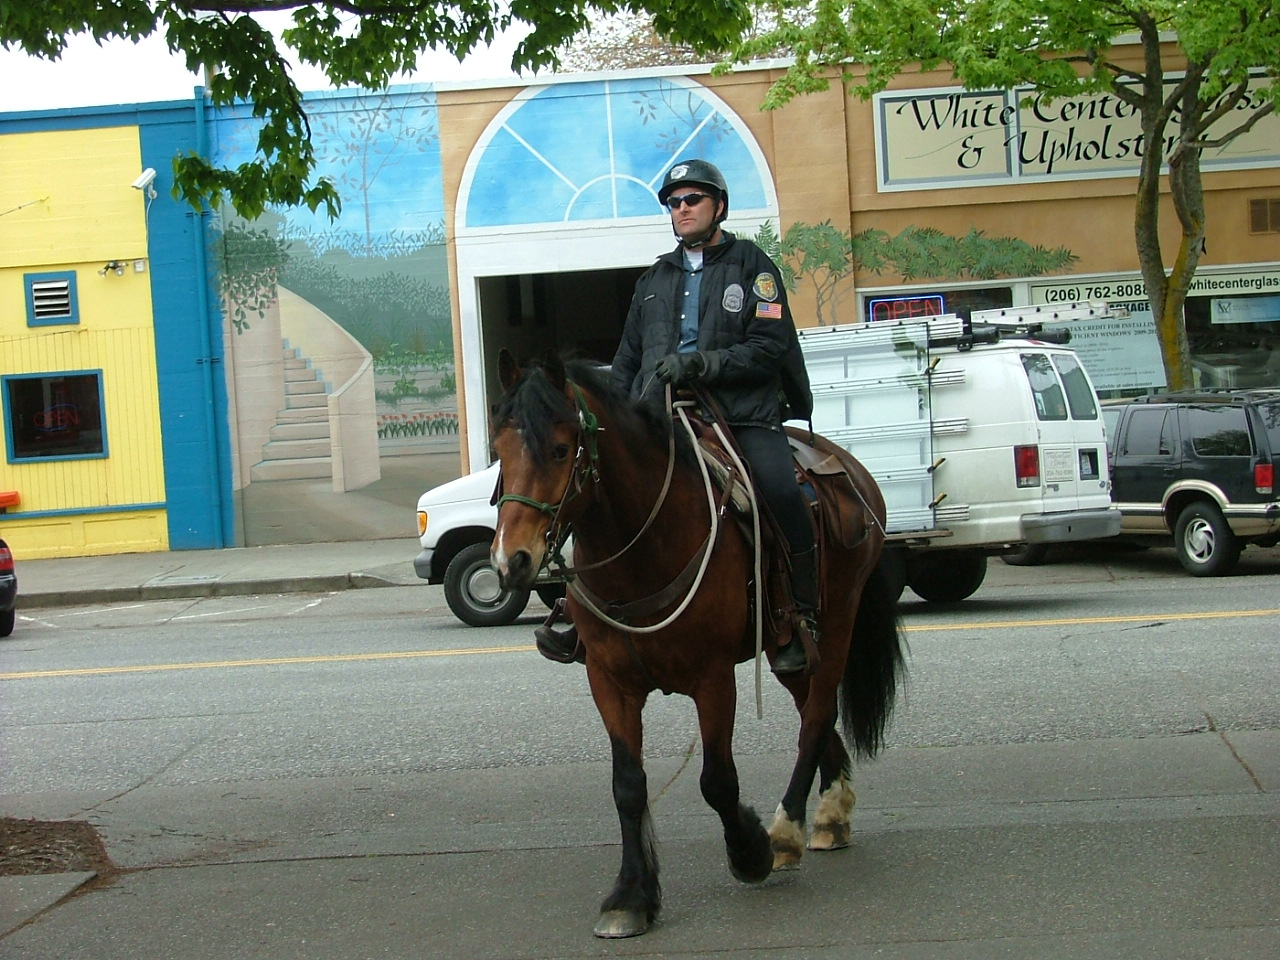 SPD patrol on horse